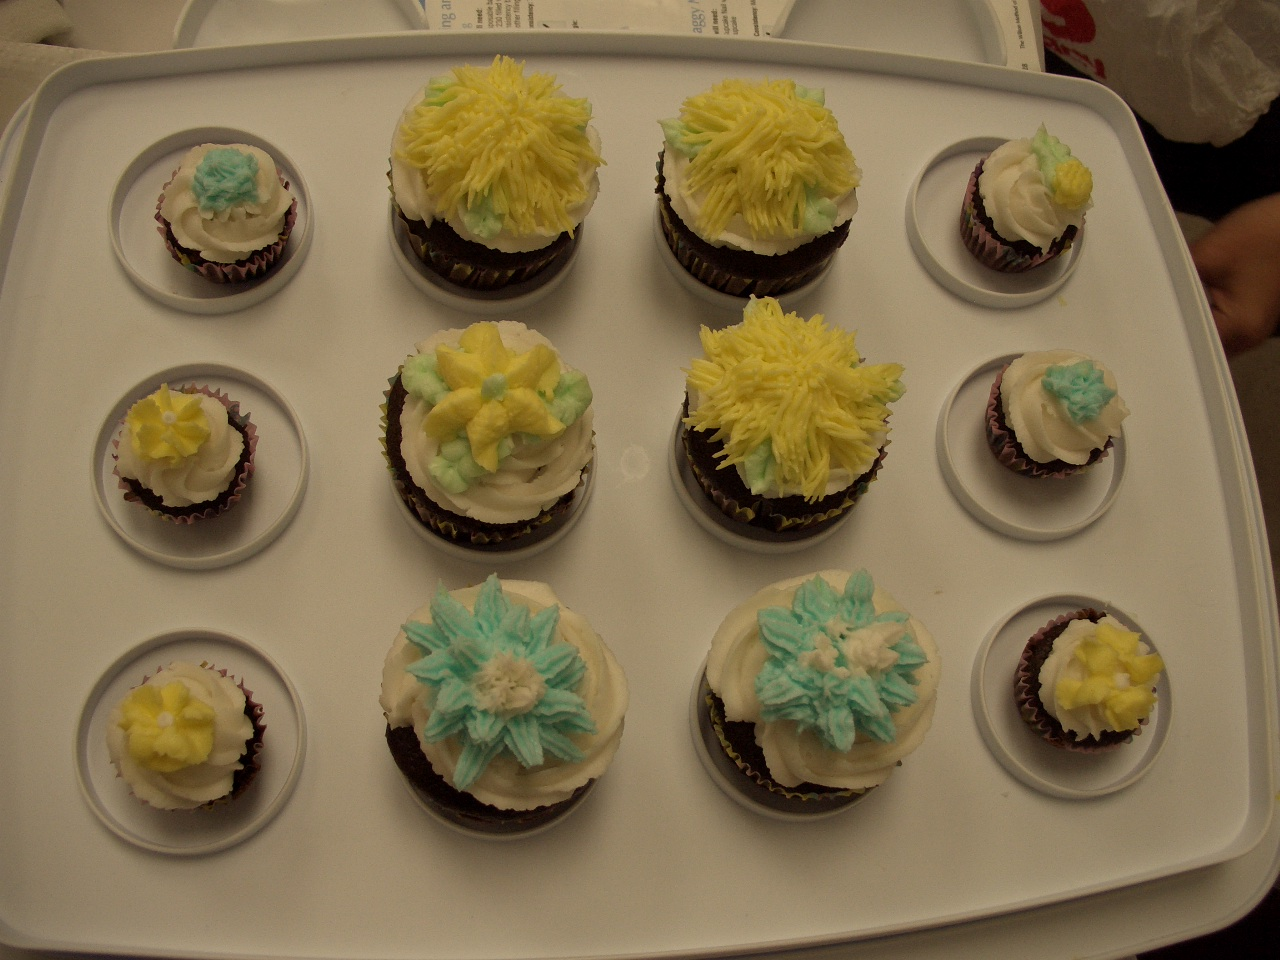 Design Bake Share: Even More from Cake Decorating Basics Class